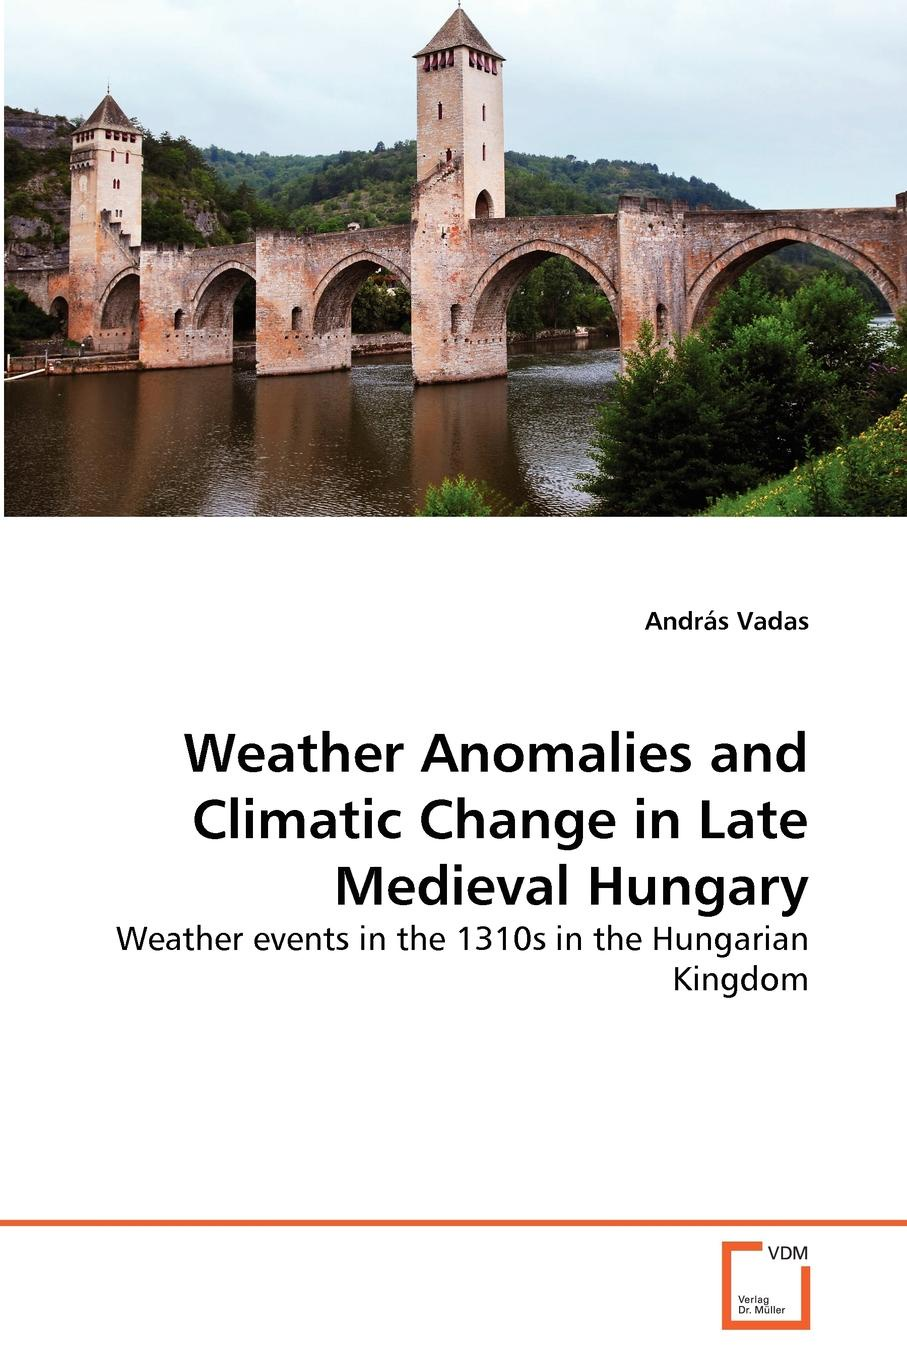 András Vadas Weather Anomalies and Climatic Change in Late Medieval Hungary climatic aspects of spaces